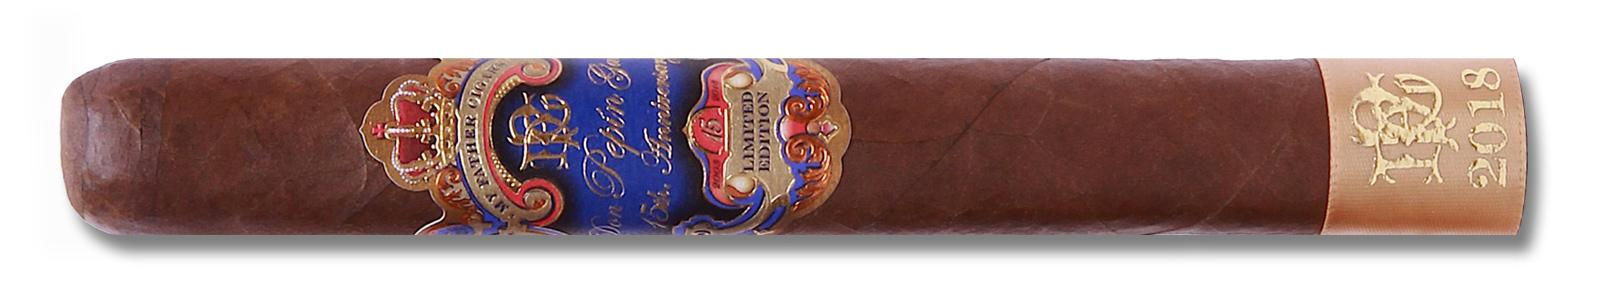 The cigar wears a Habano-seed wrapper grown in Nicaragua that the Garcia's describe as rosado oscuro.